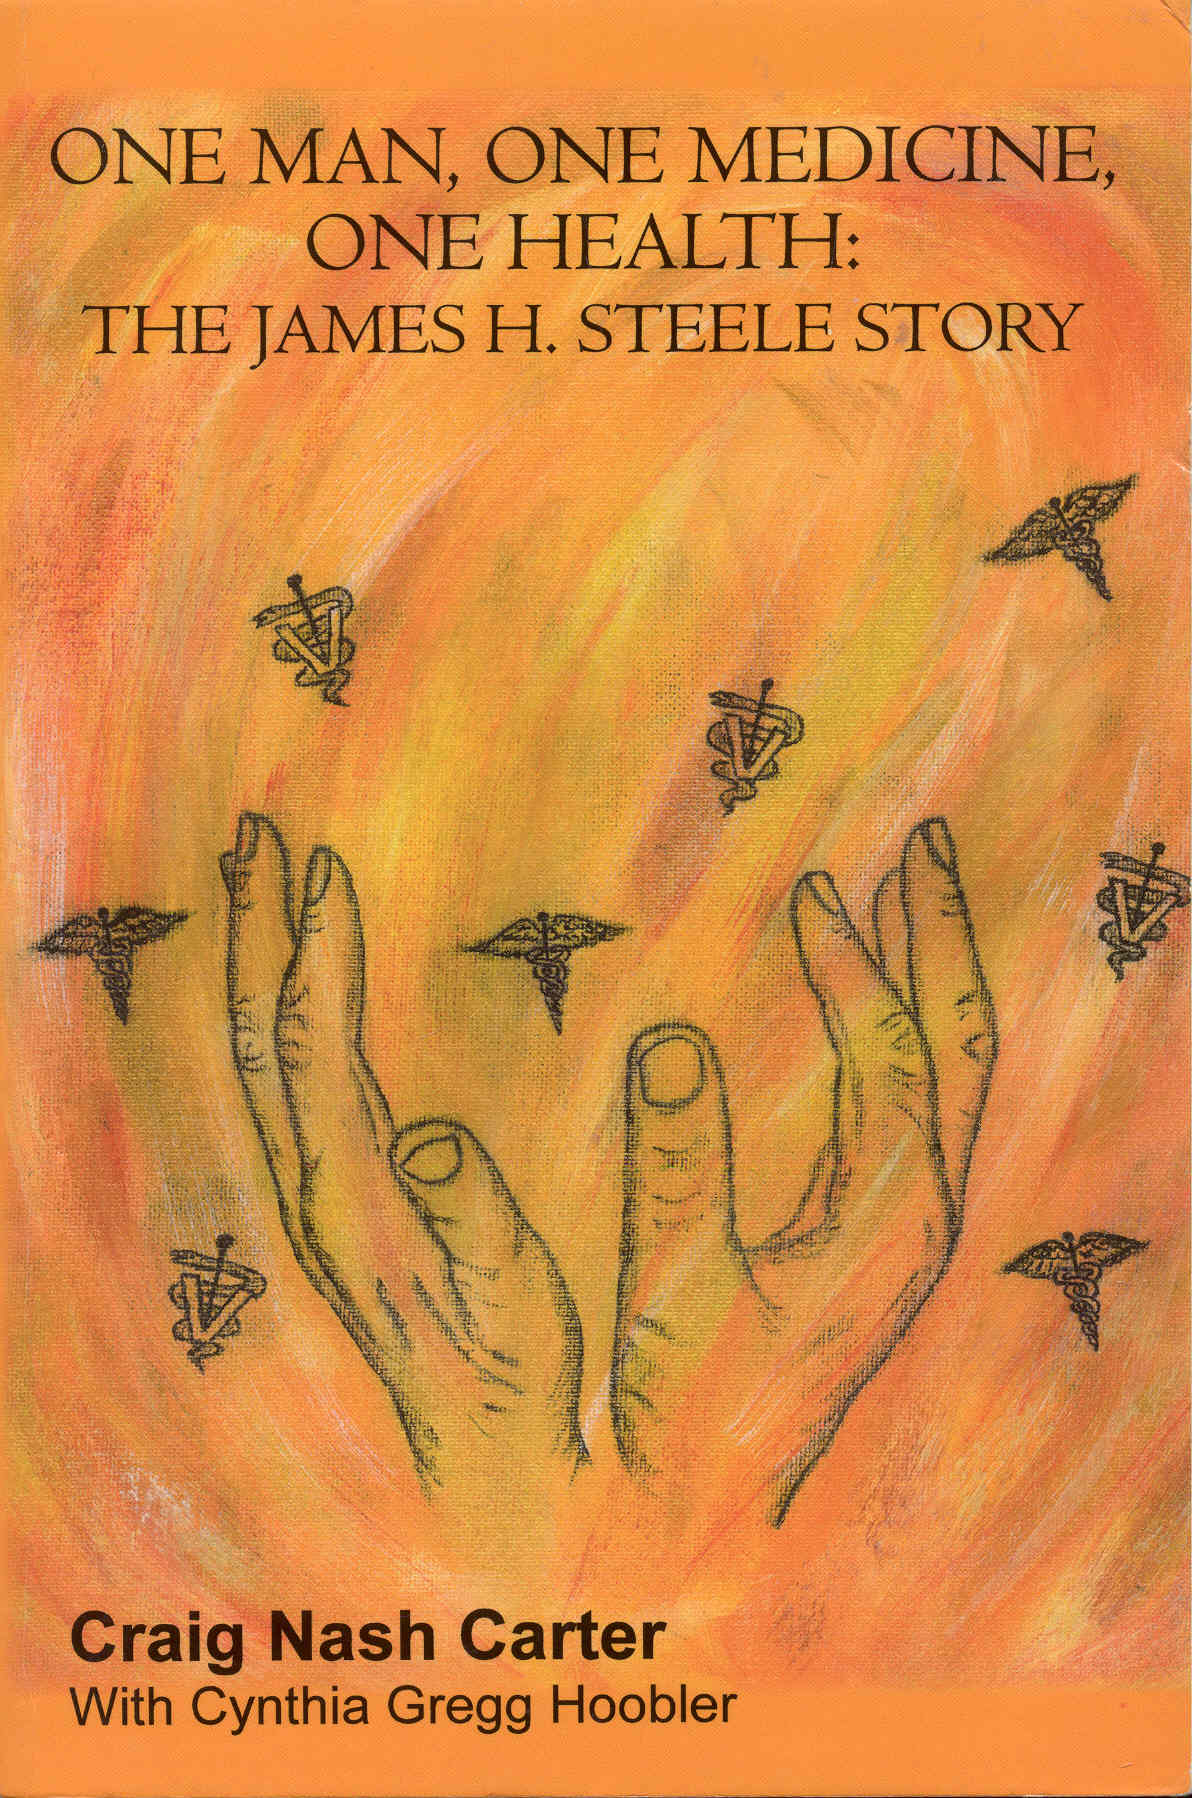 Image for One Man, One Medicine, One Health: The James H. Steele Story